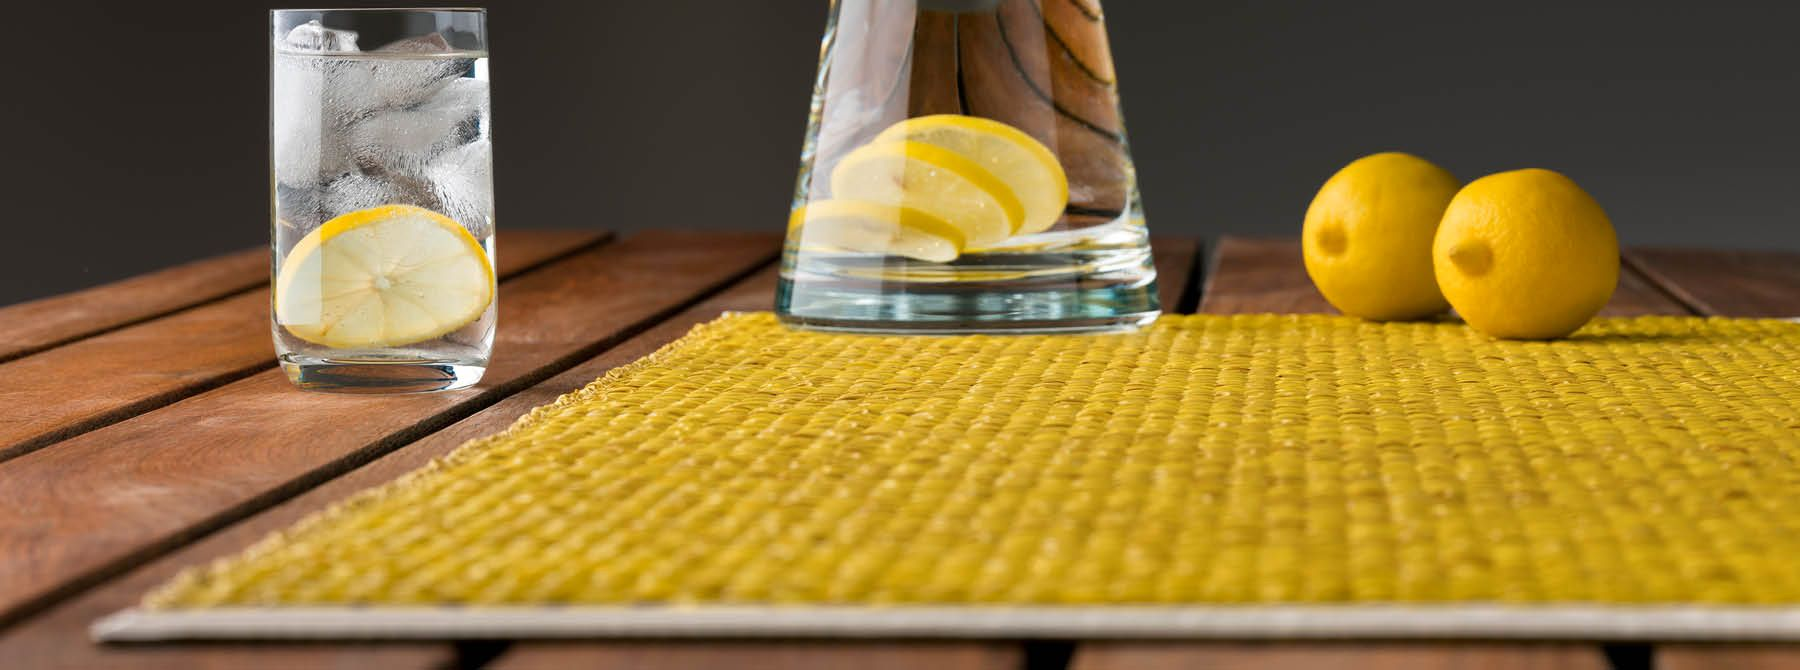 Pappelina Table Runners - Made in Sweden